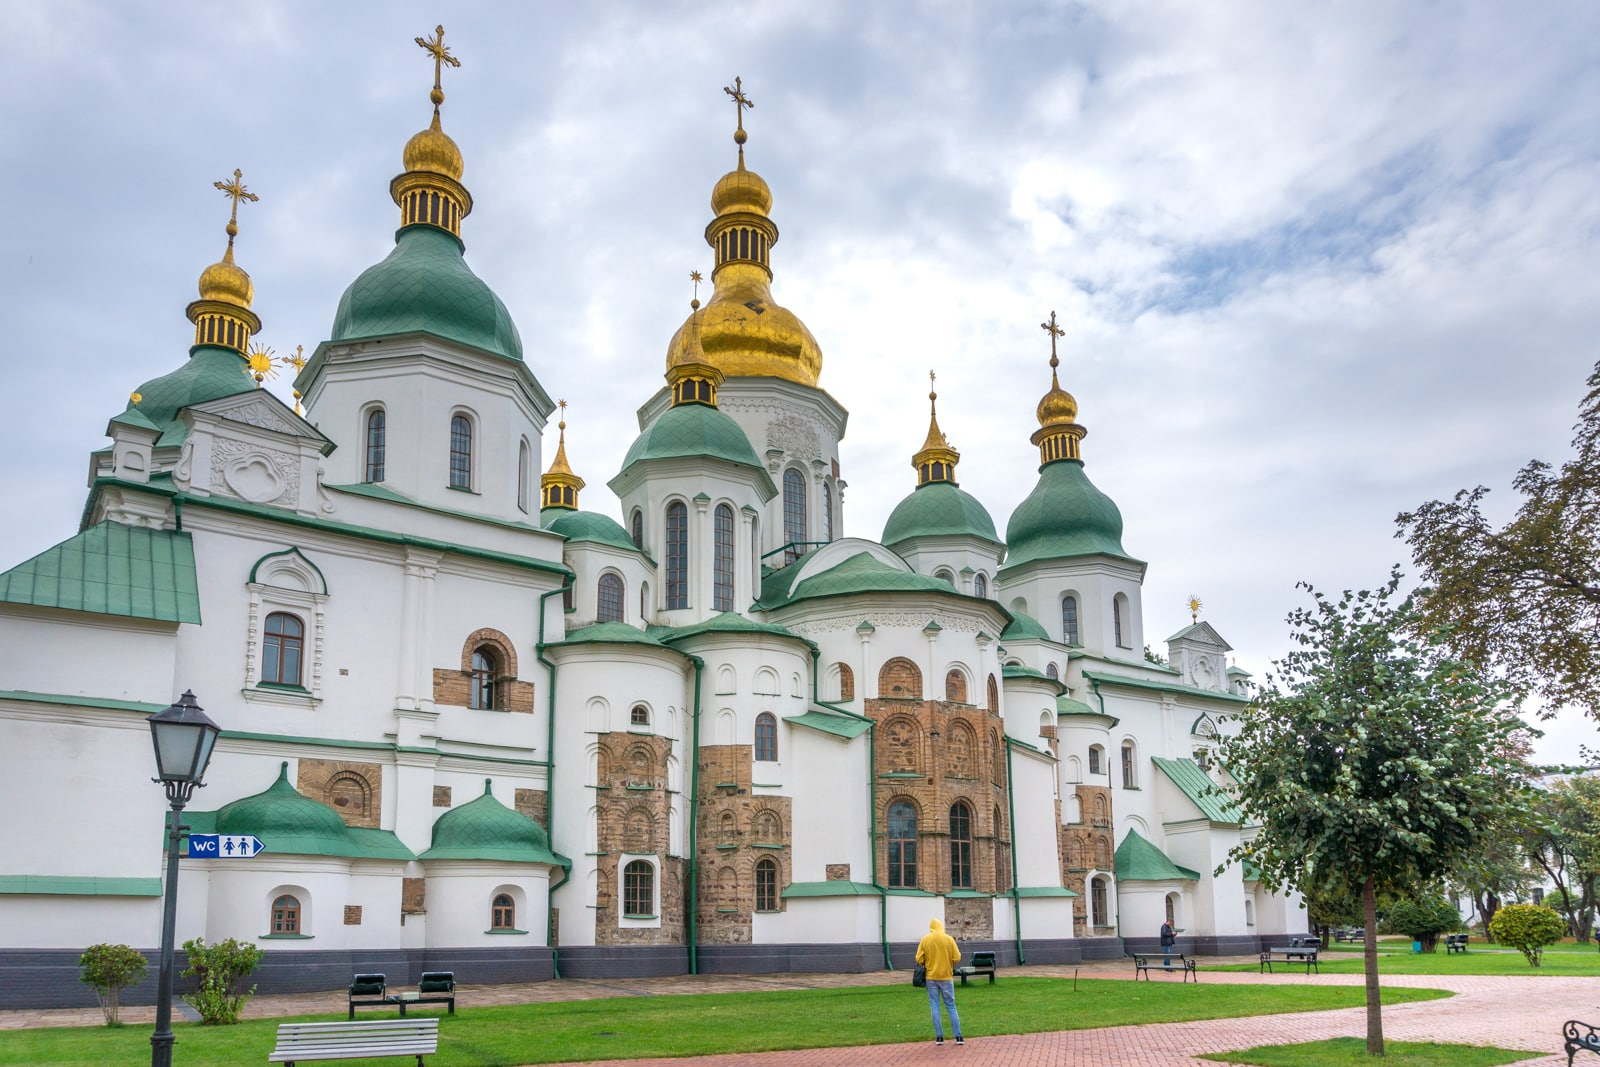 Saint Sophia cathedral in Kyiv, Ukraine